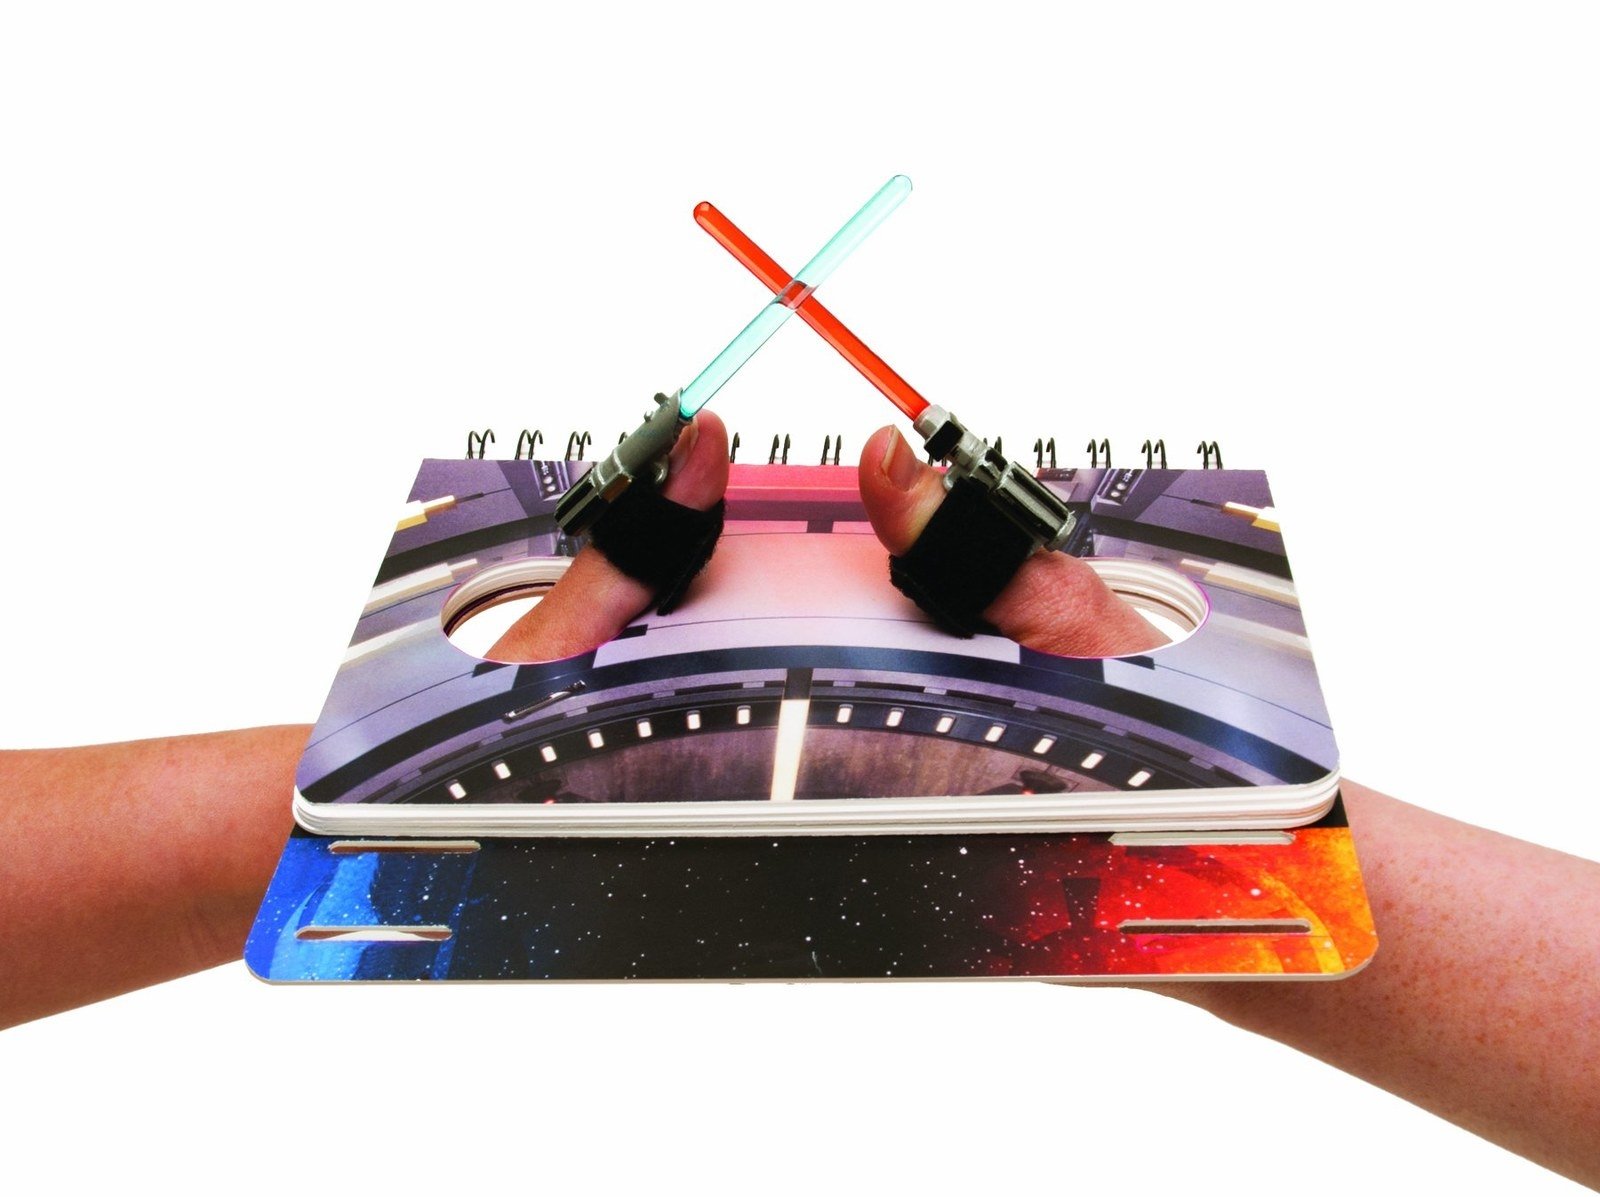 Thumb-wrestling has never been more dramatic! The spiral-bound book has seven stages to choose from and tiny lightsabers for your thumbs. Get it from Amazon for $11.69.